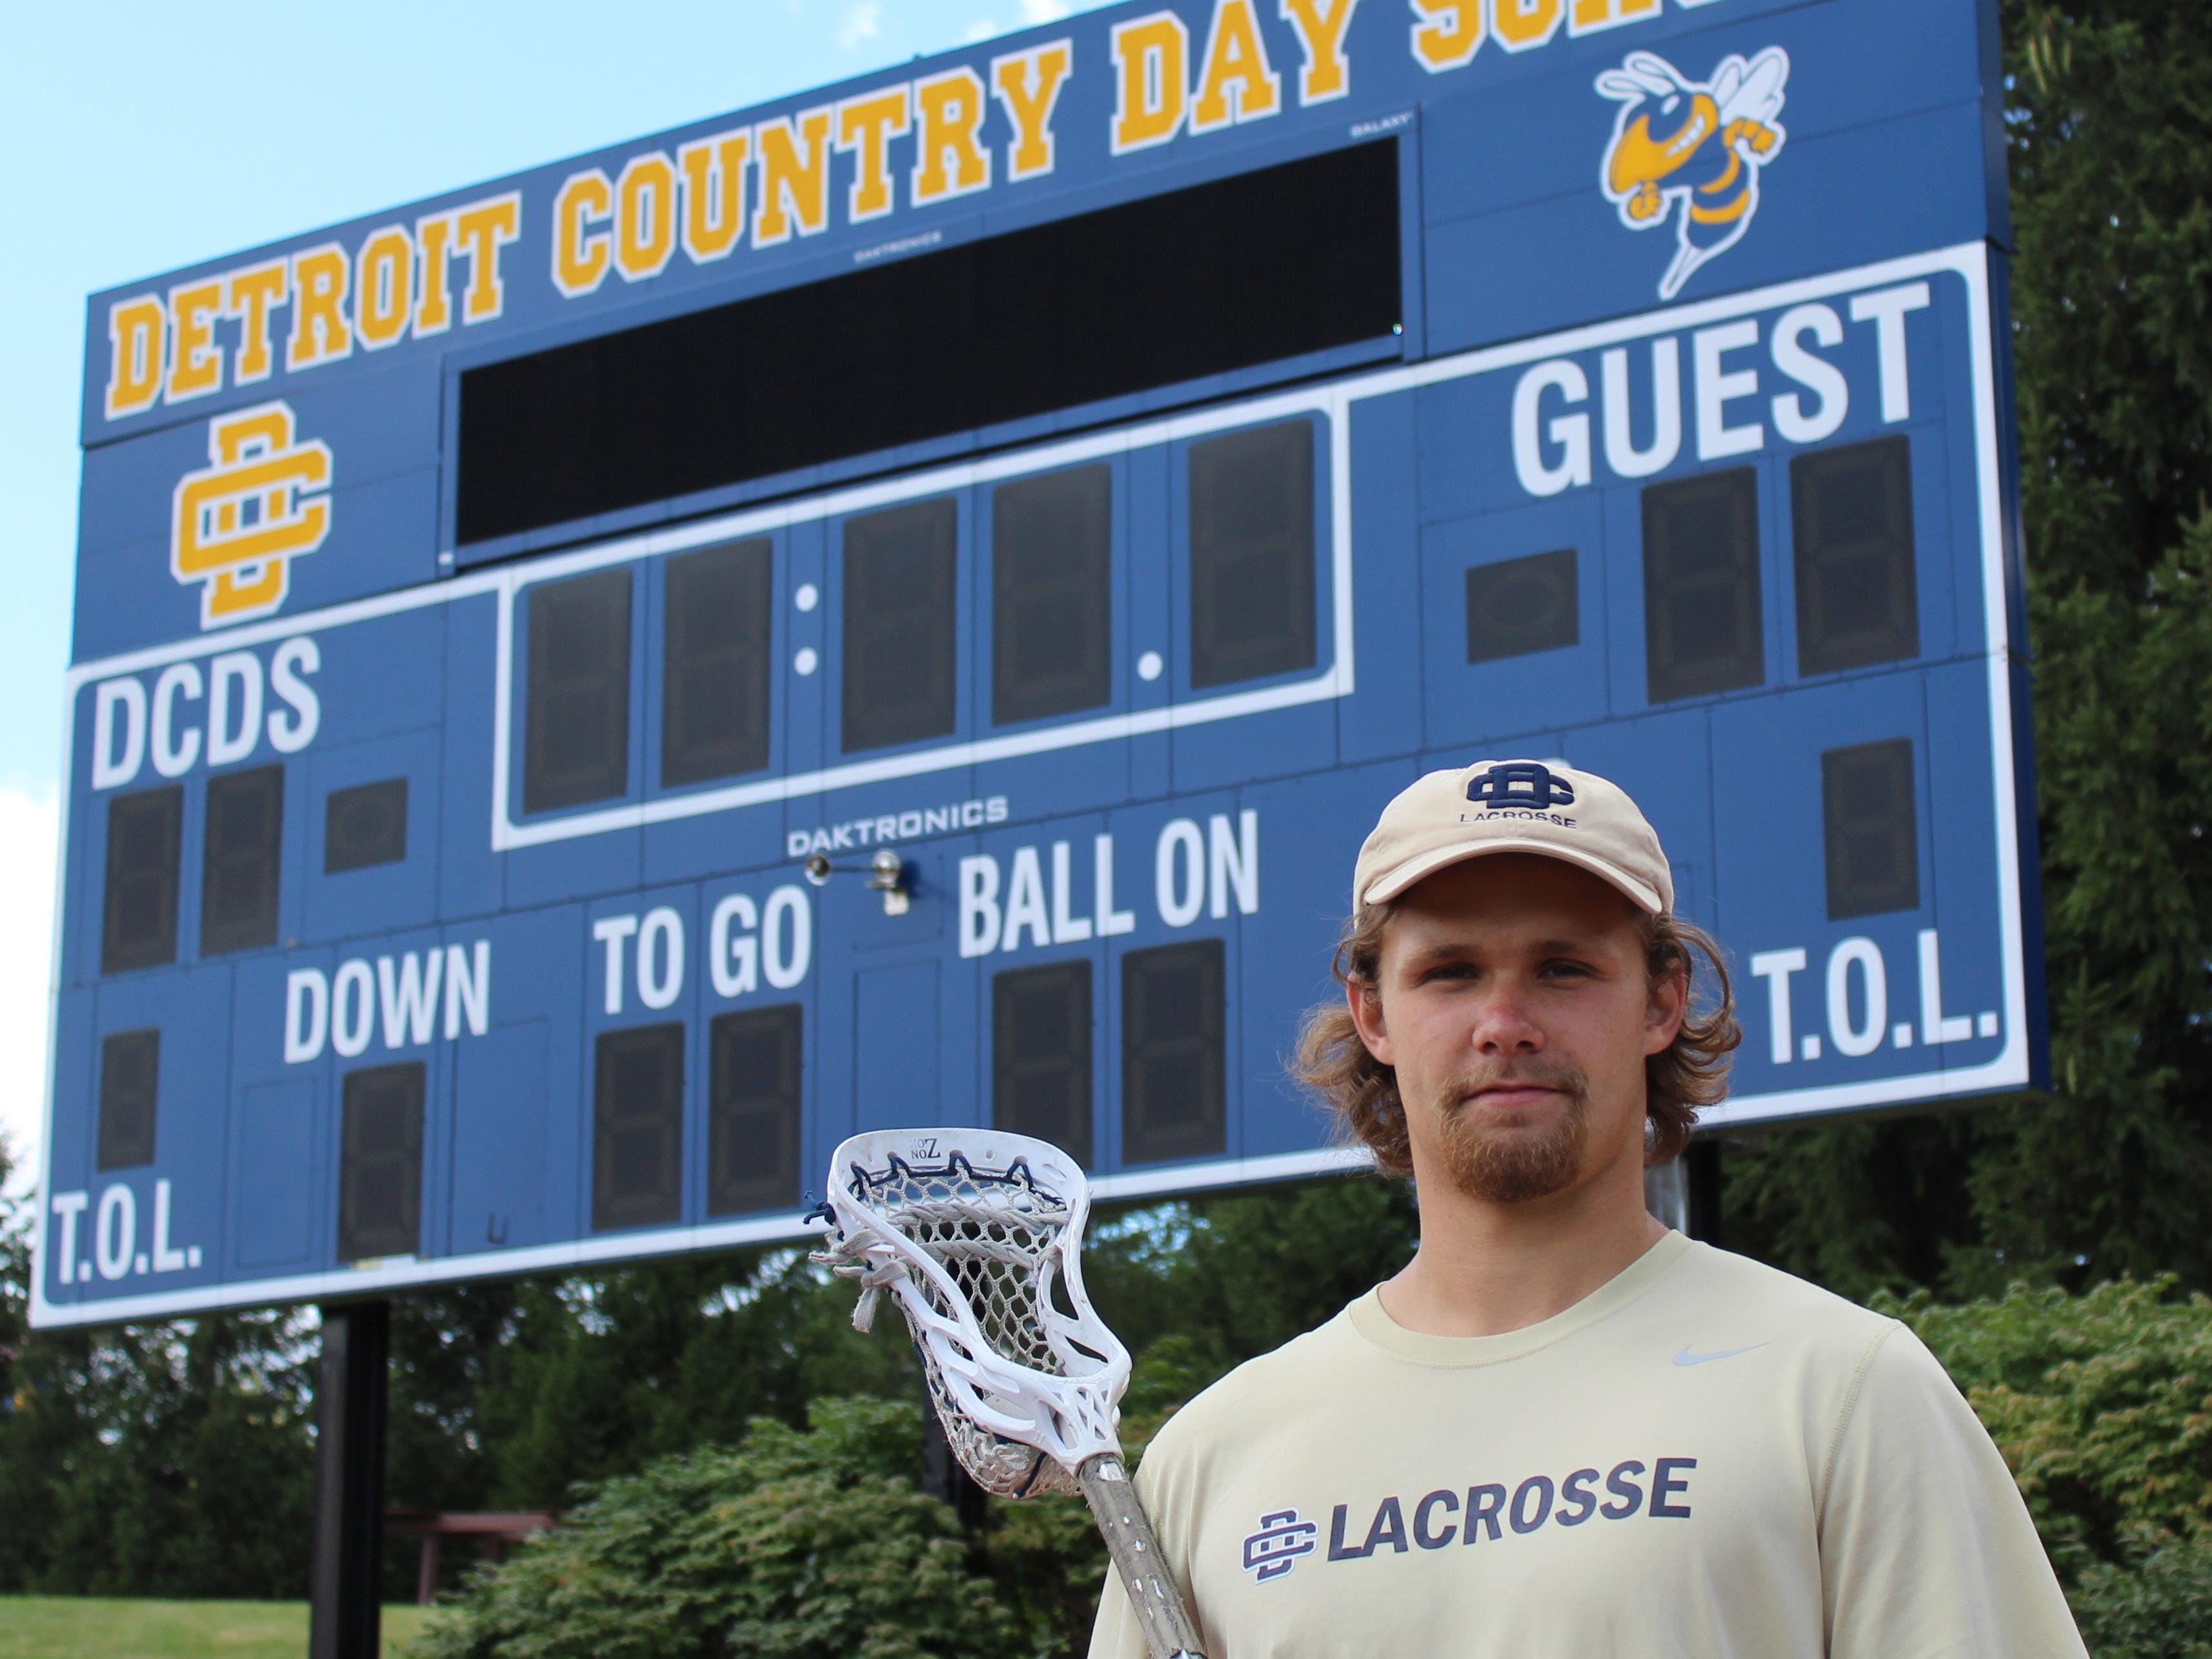 Nick Martin is the first student-athlete from Detroit Country Day to capture the Chuck Vorce Award as Michigan's top male high school lacrosse player.